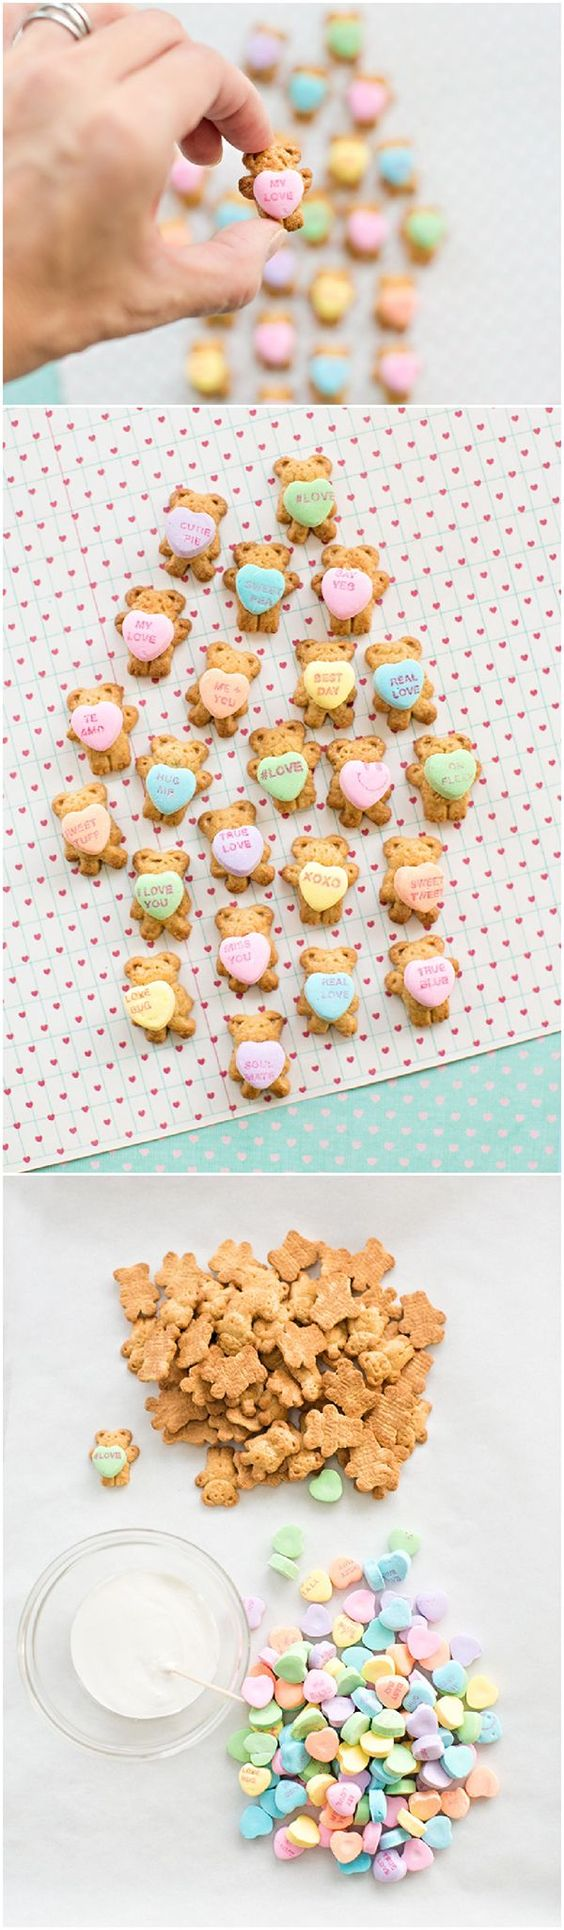 Teddy Bear Graham Cookies Holding Conversation Hearts. Easy and cute Valentine's Day treat!: